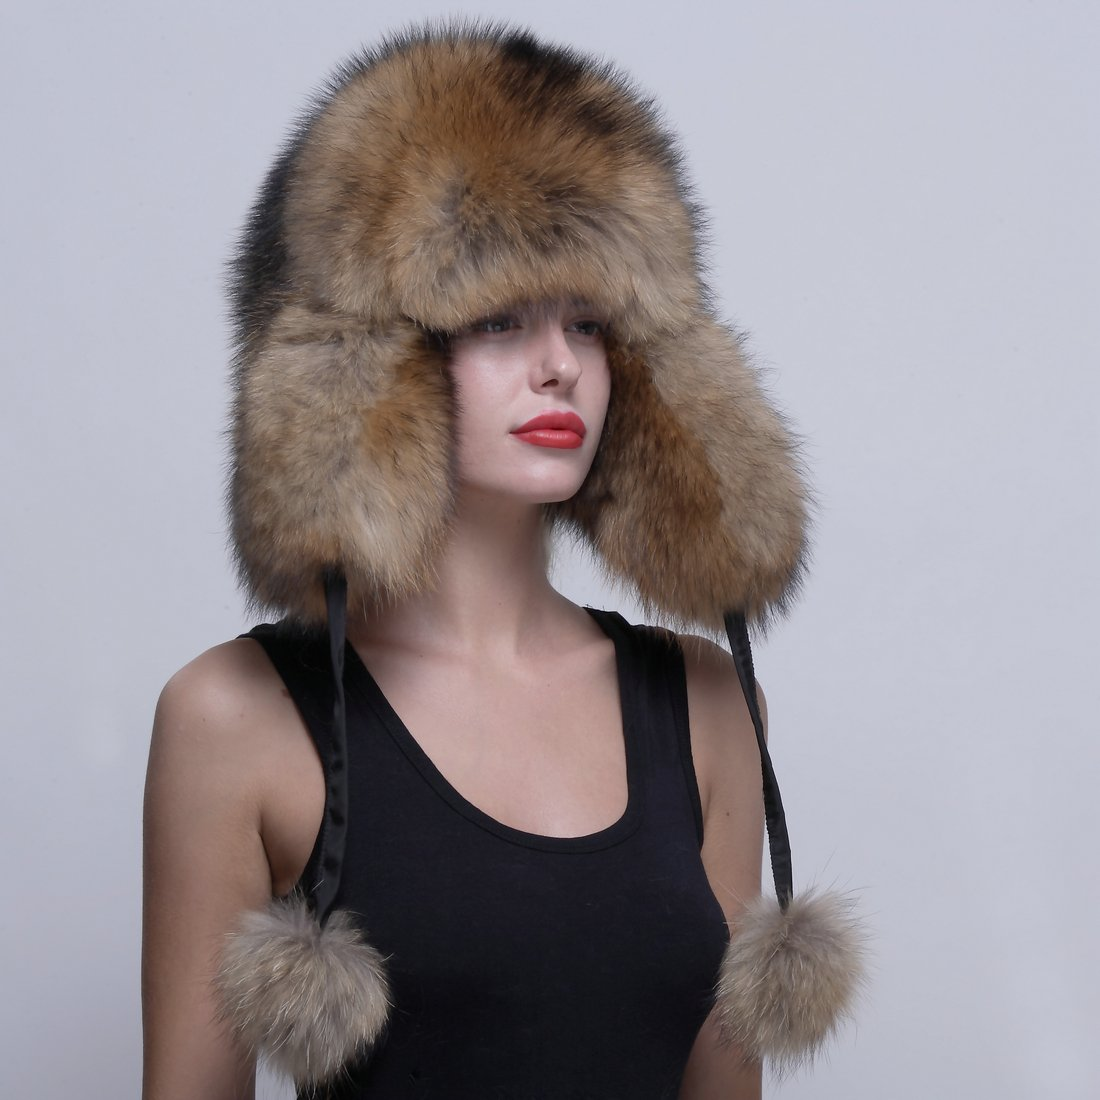 URSFUR Genuine Raccoon Fur Russian Ushanka Trapper Hat Cap with Fur Ball Pompom by URSFUR (Image #3)